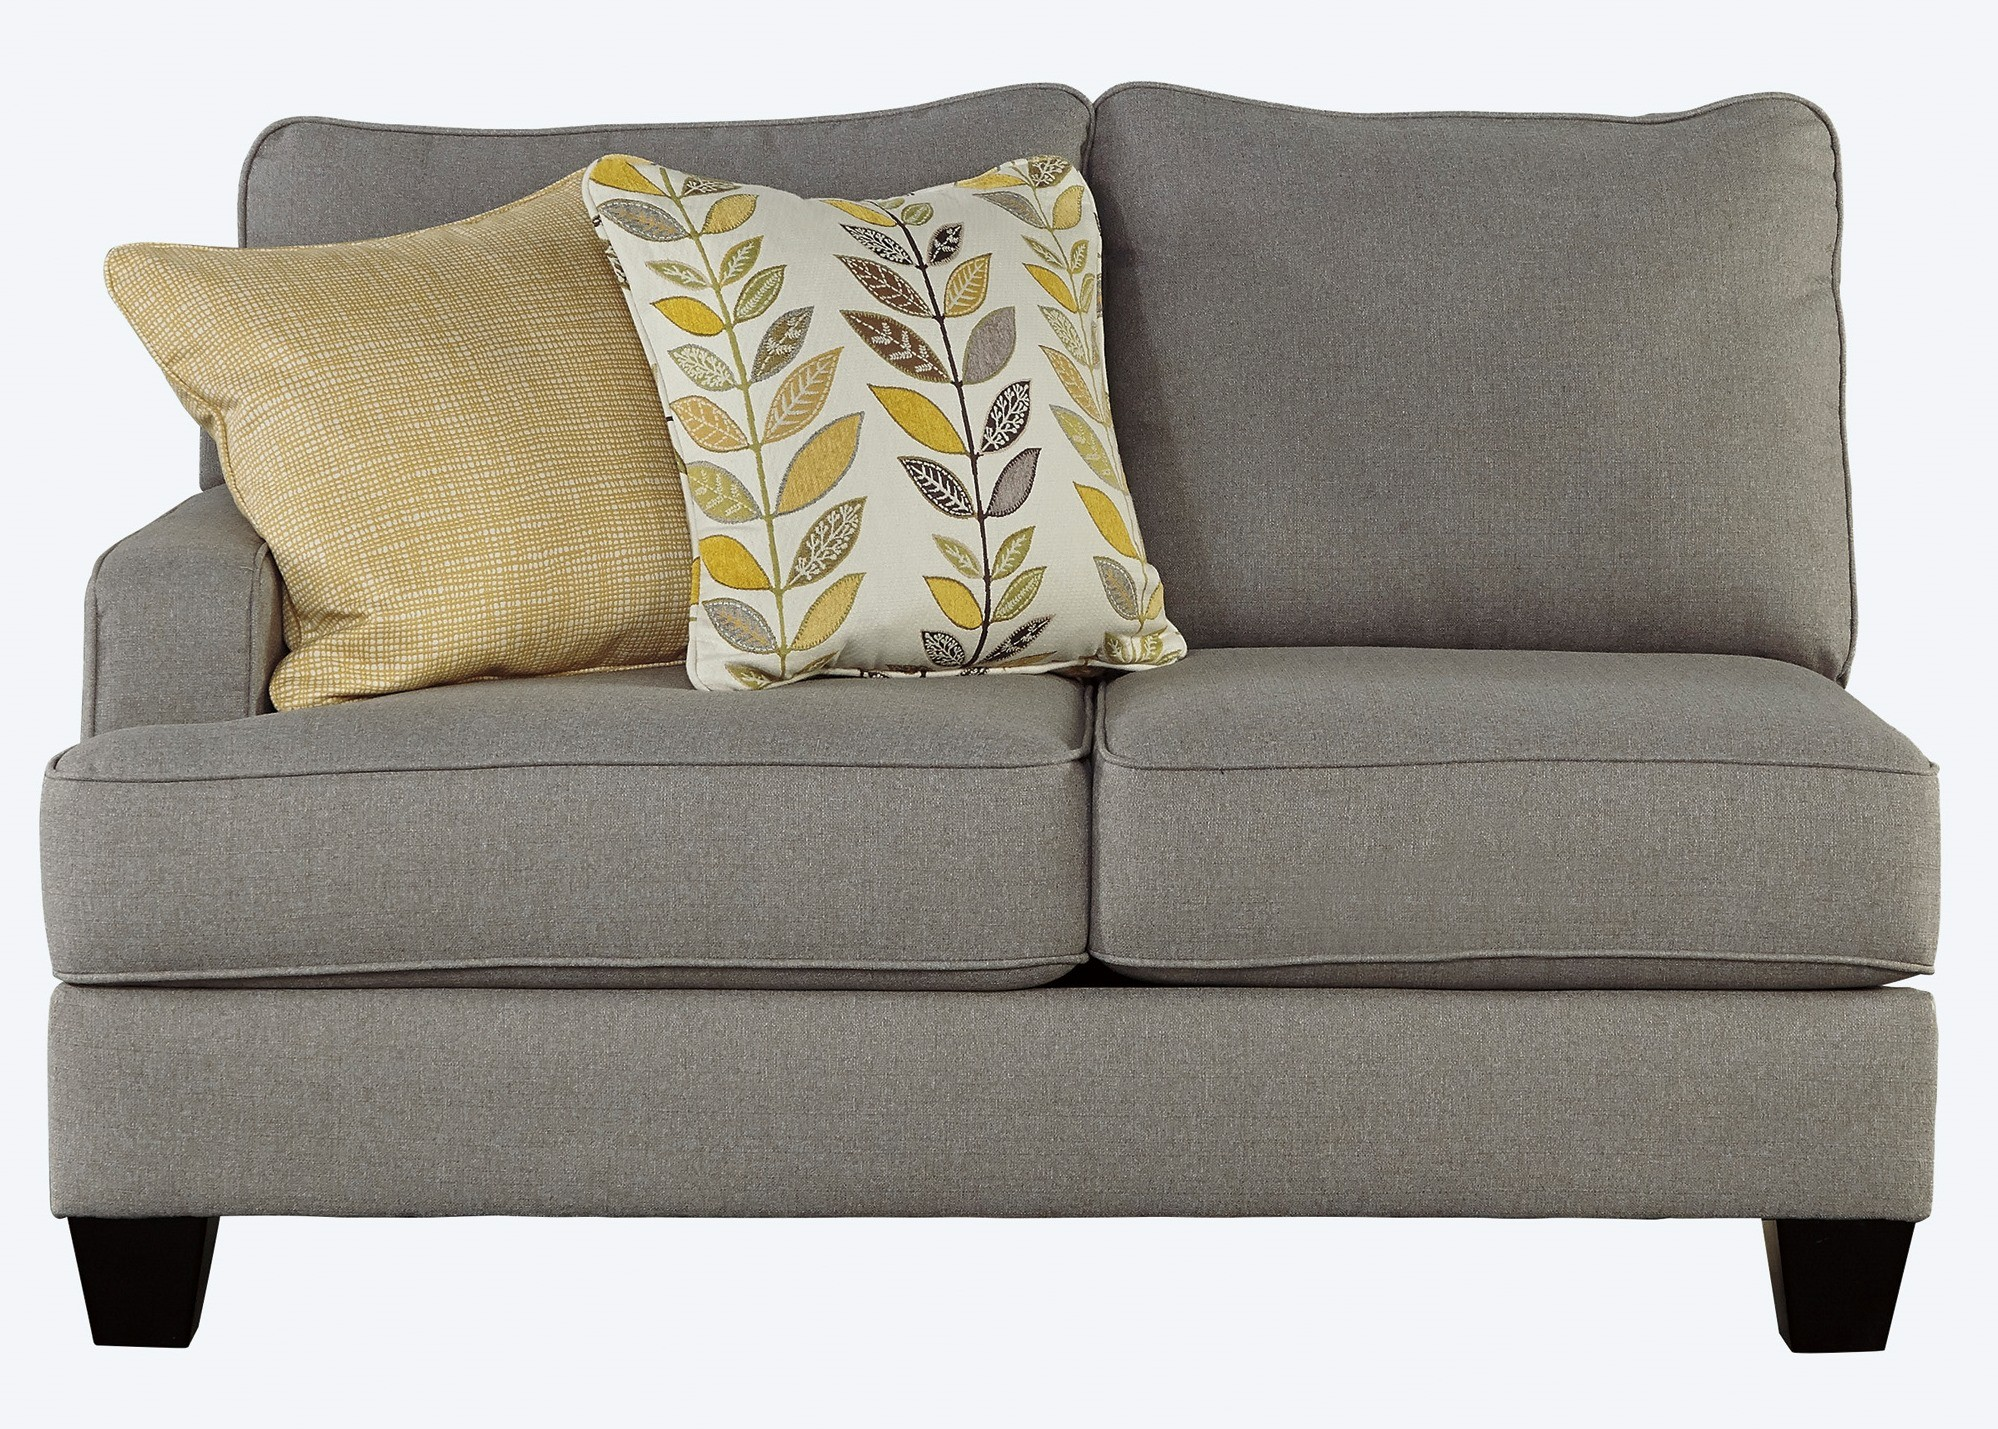 Chamberly Alloy Loveseat Sectional From Ashley 2430256